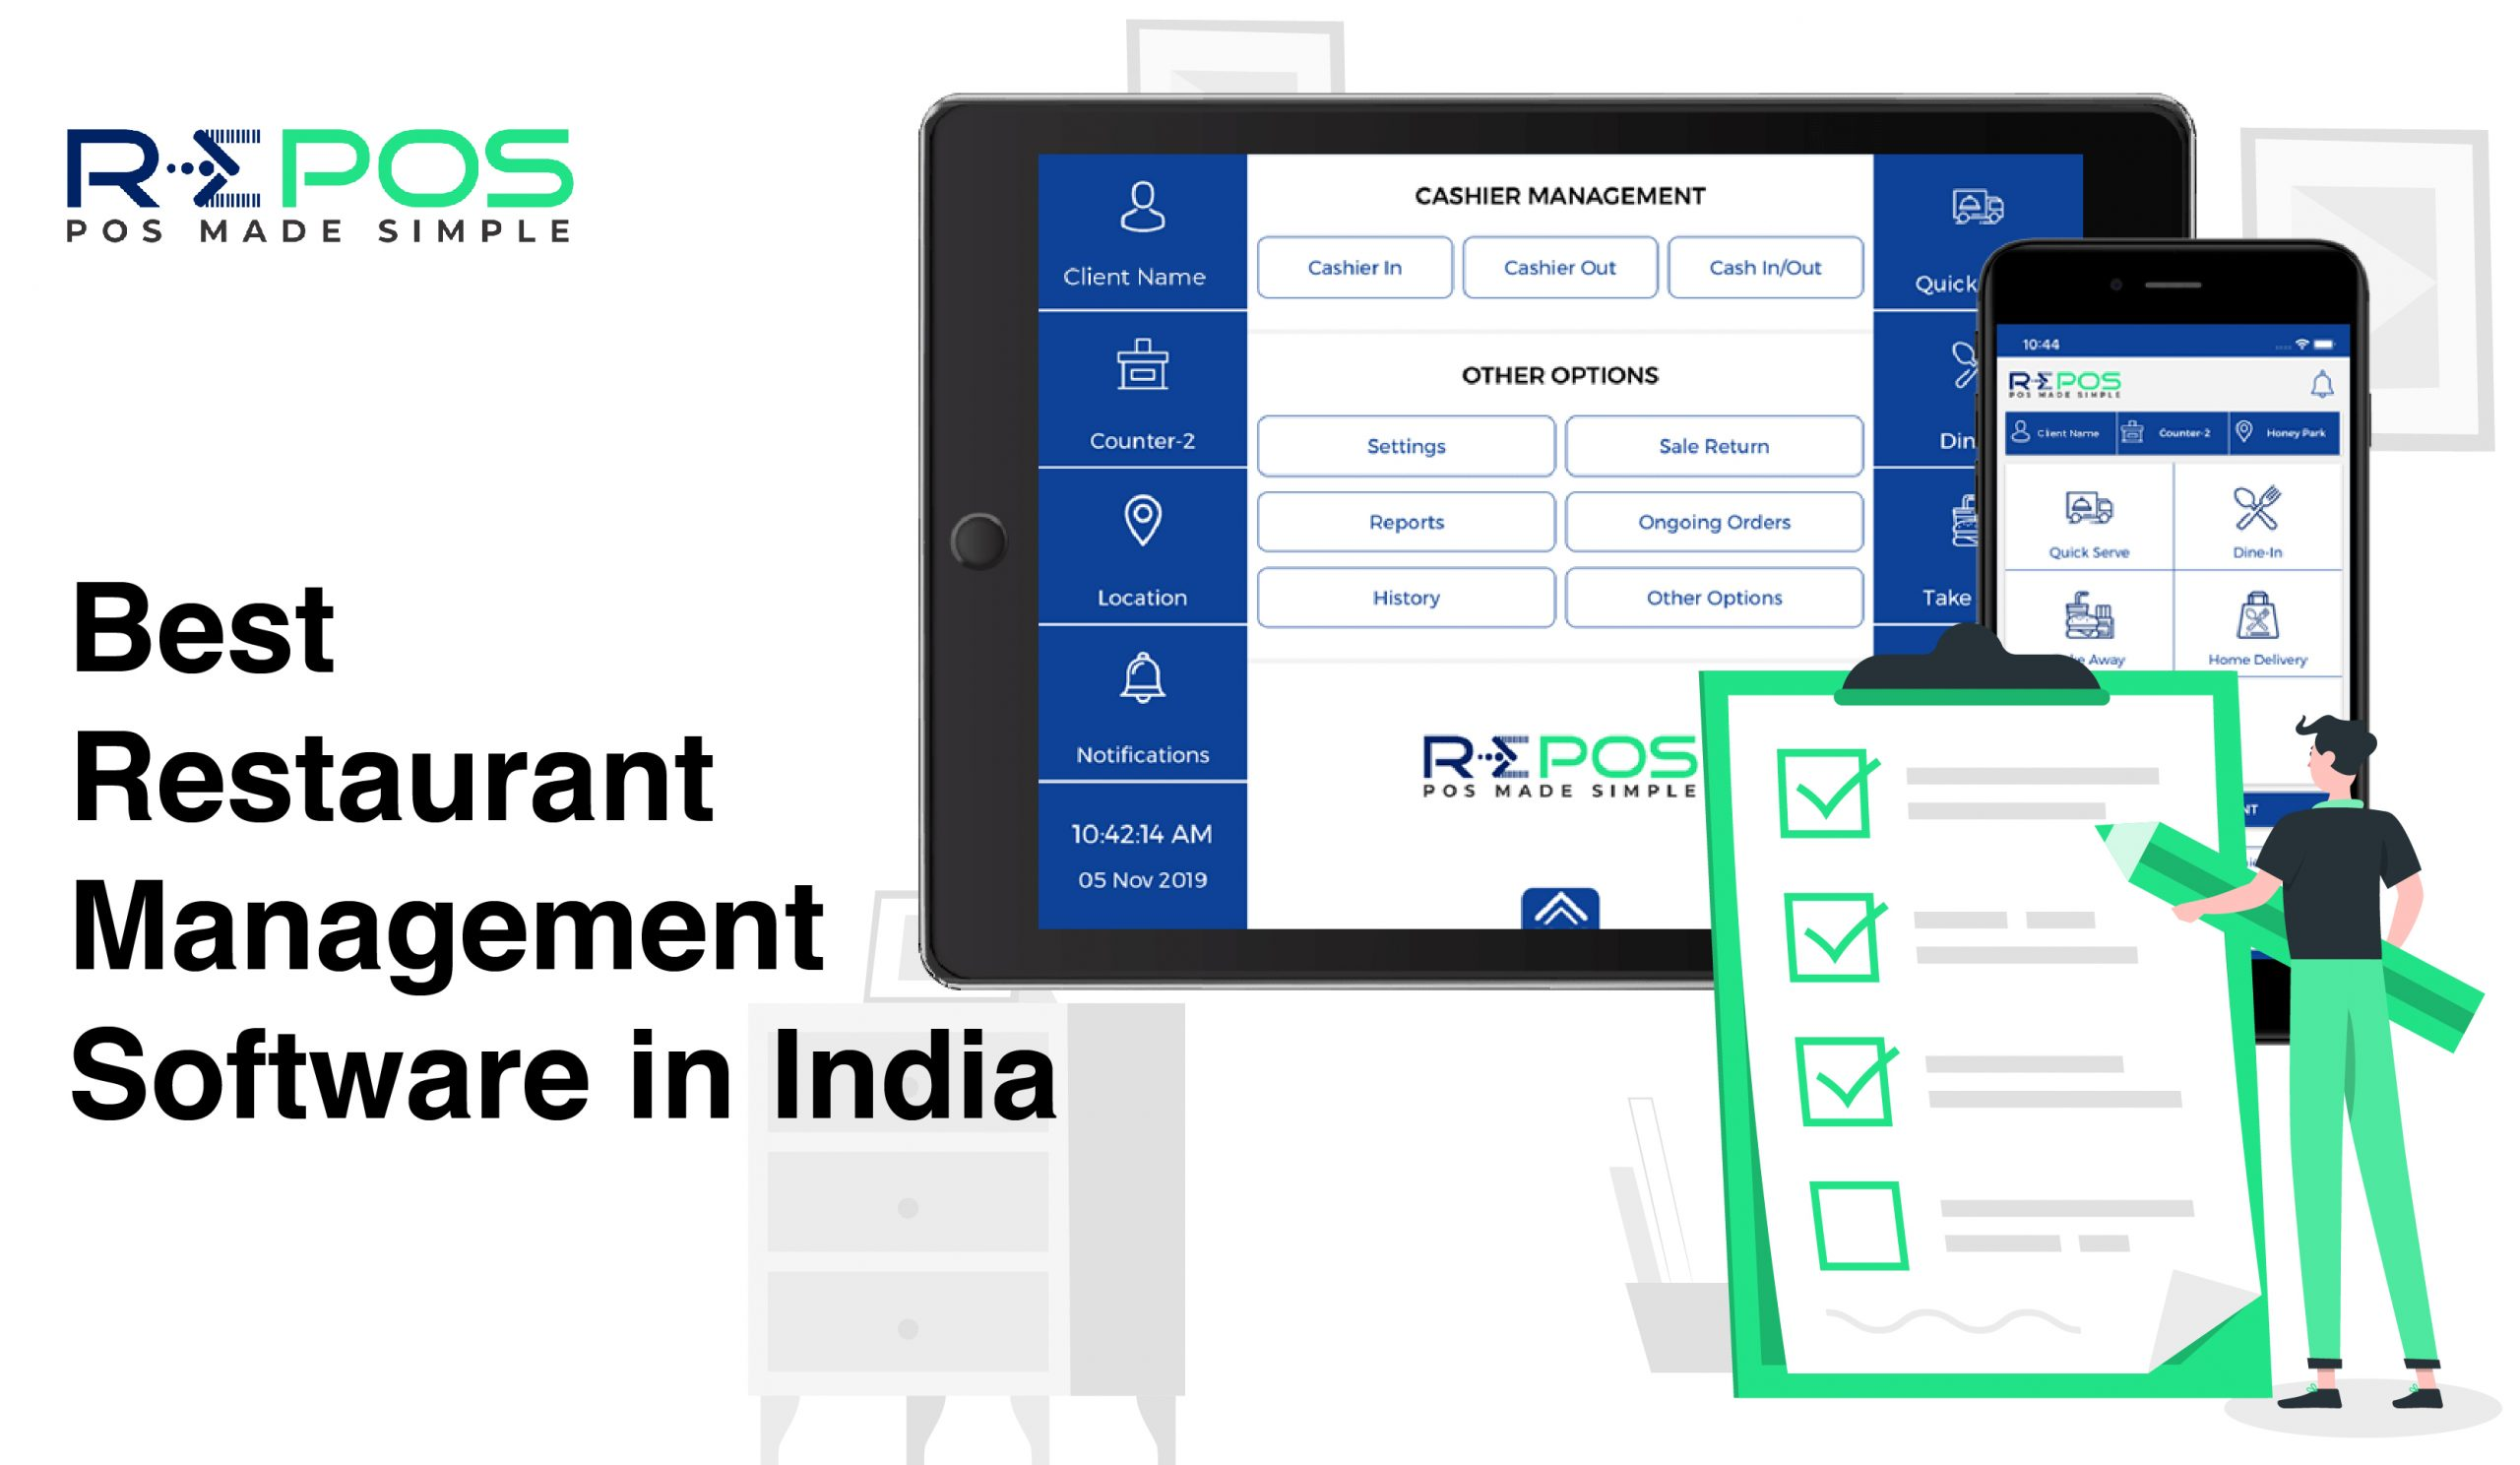 RePOS Best Restaurant Management Software in India